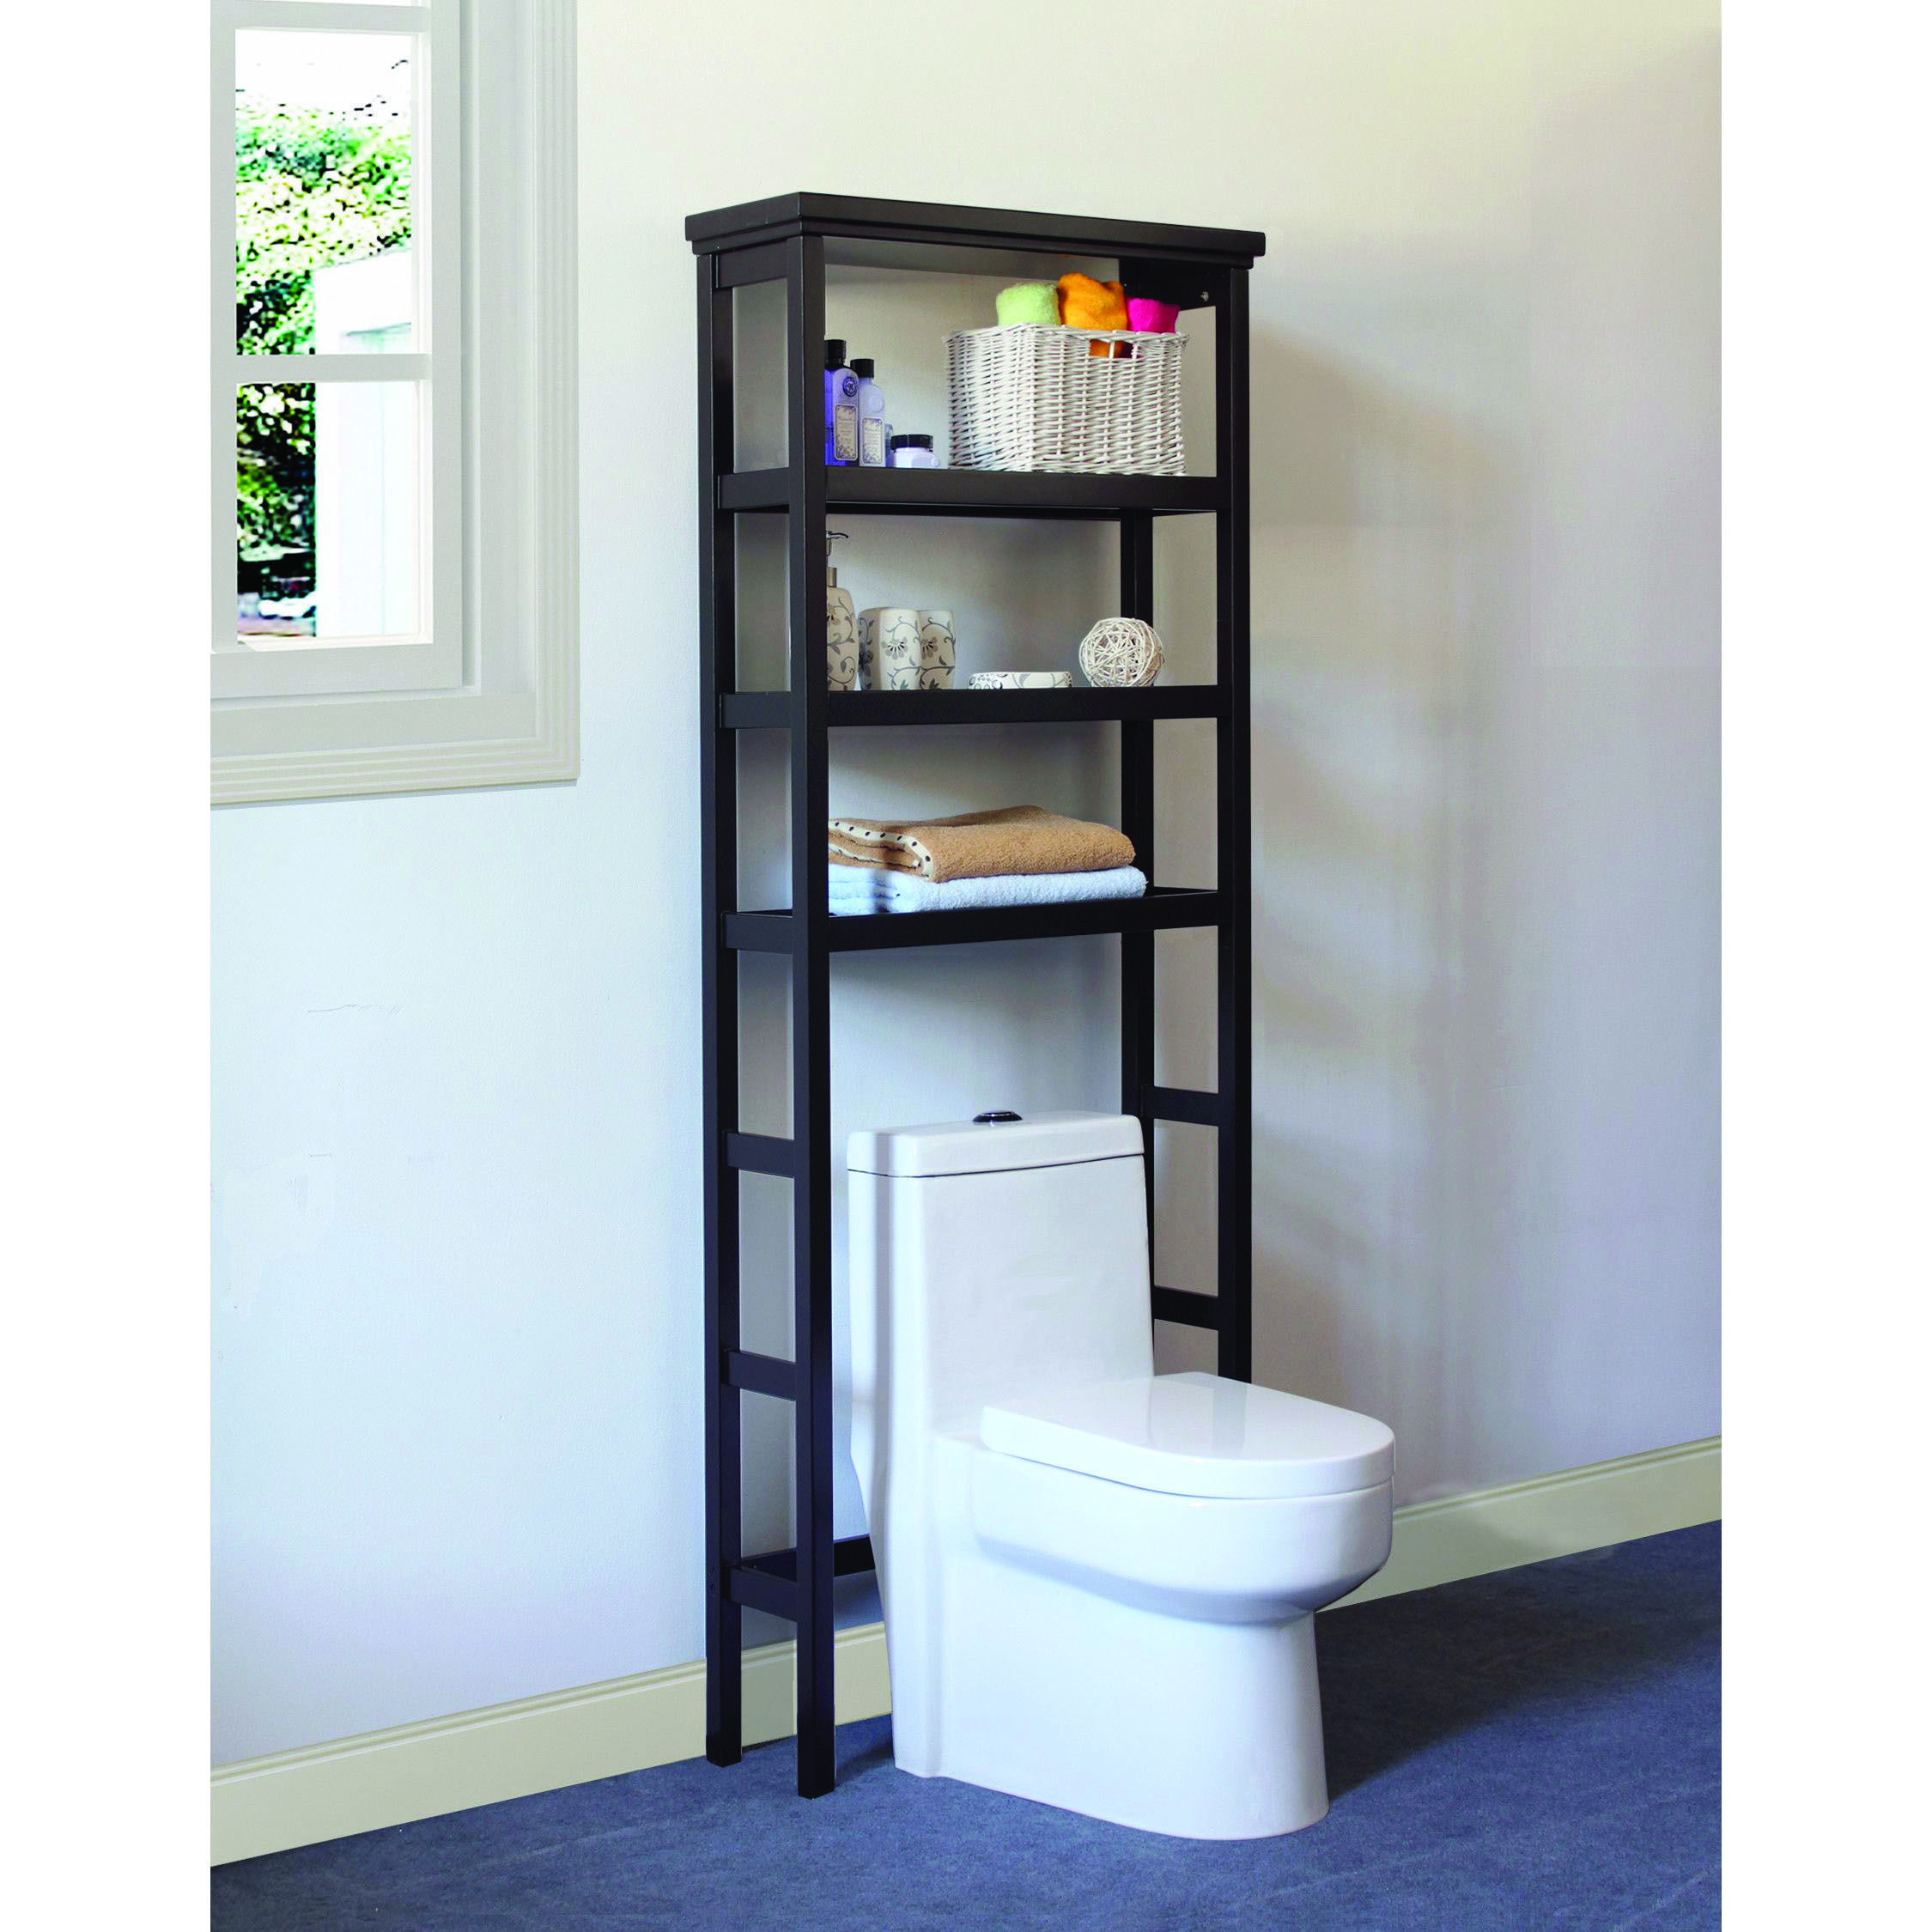 Find Over The Toilet Storage Australia Only On This Page Toilet Storage Bathroom Shelves Bathrooms Remodel